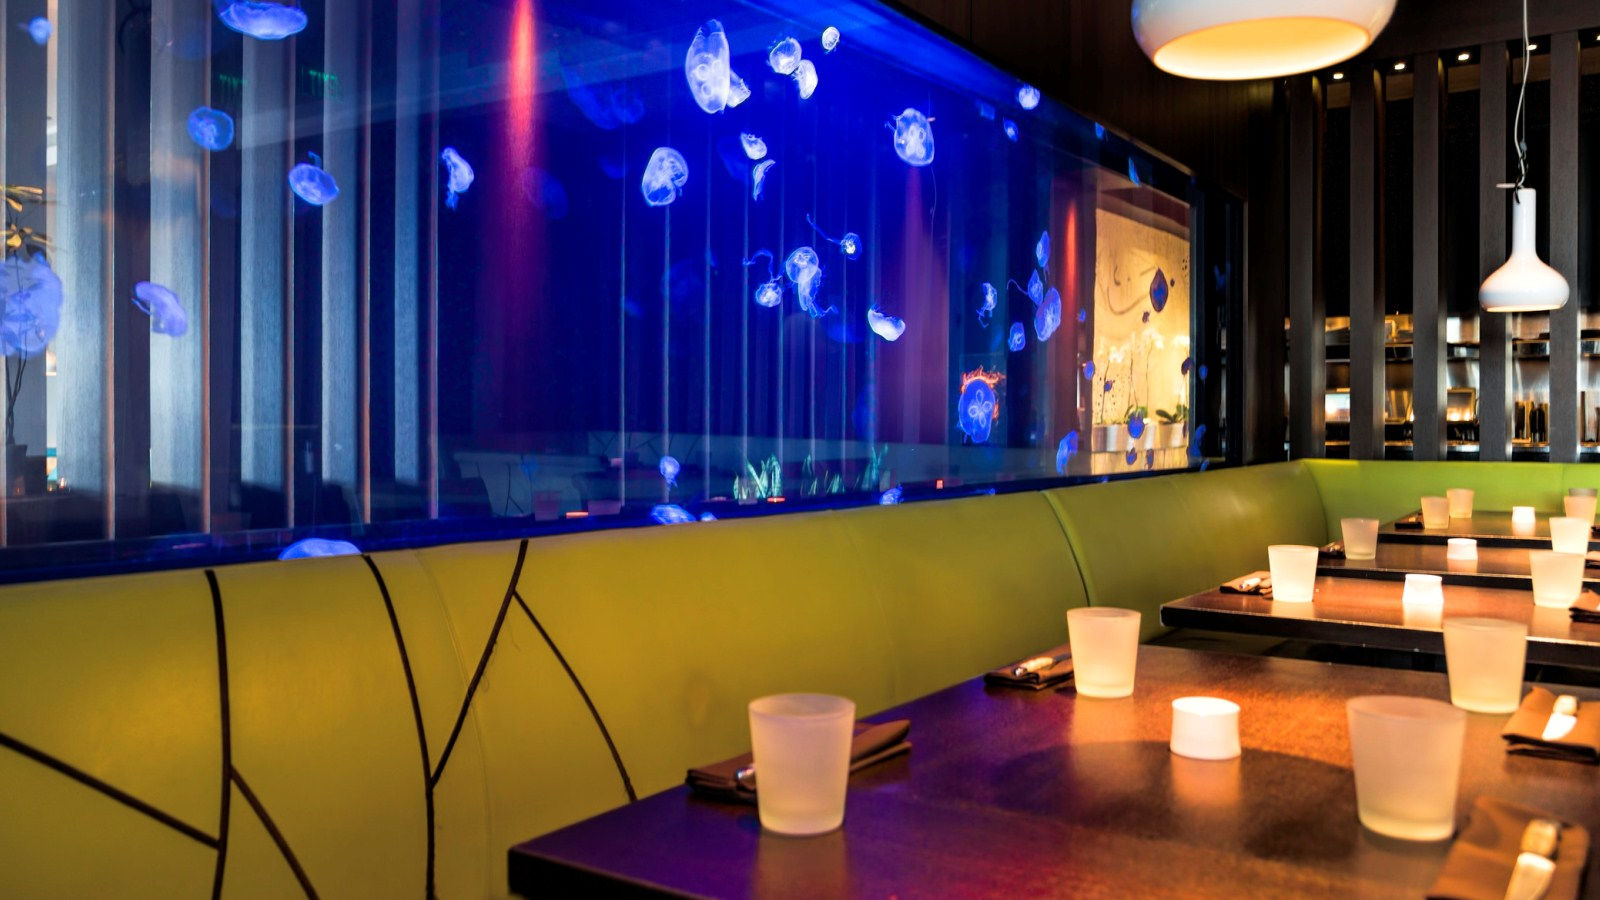 W Fort Lauderdale - Steak 954 Jellyfish Tank